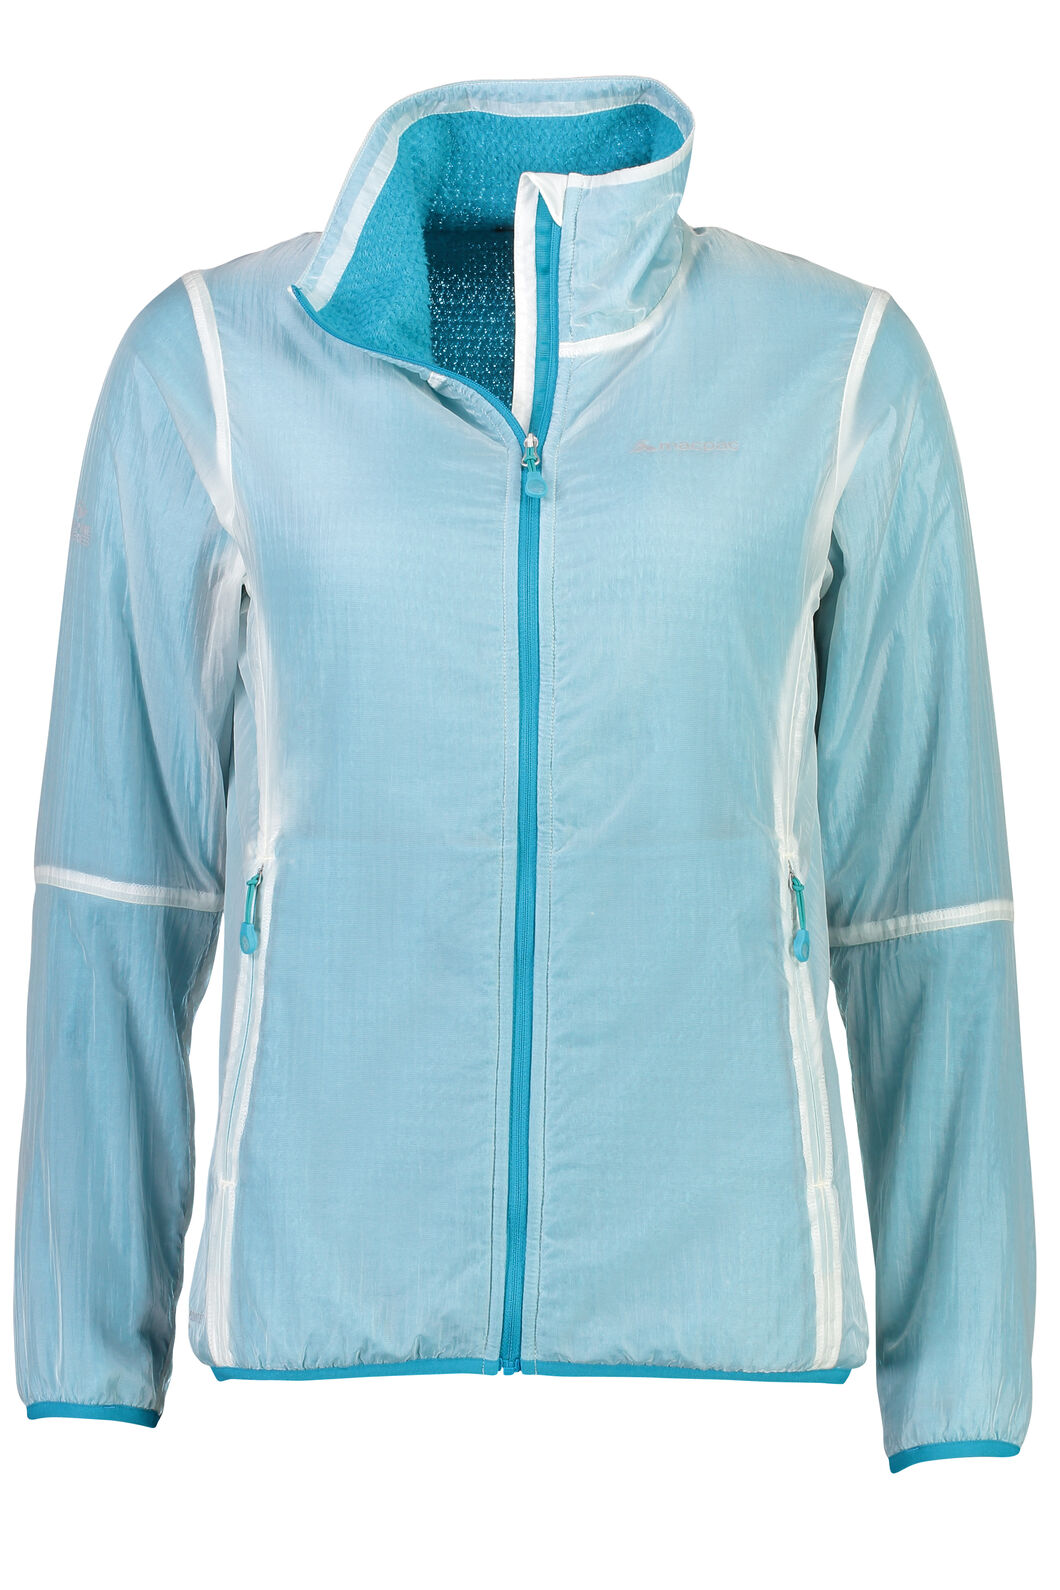 Centauri Polartec® Jacket - Women's, White/Enamel, hi-res